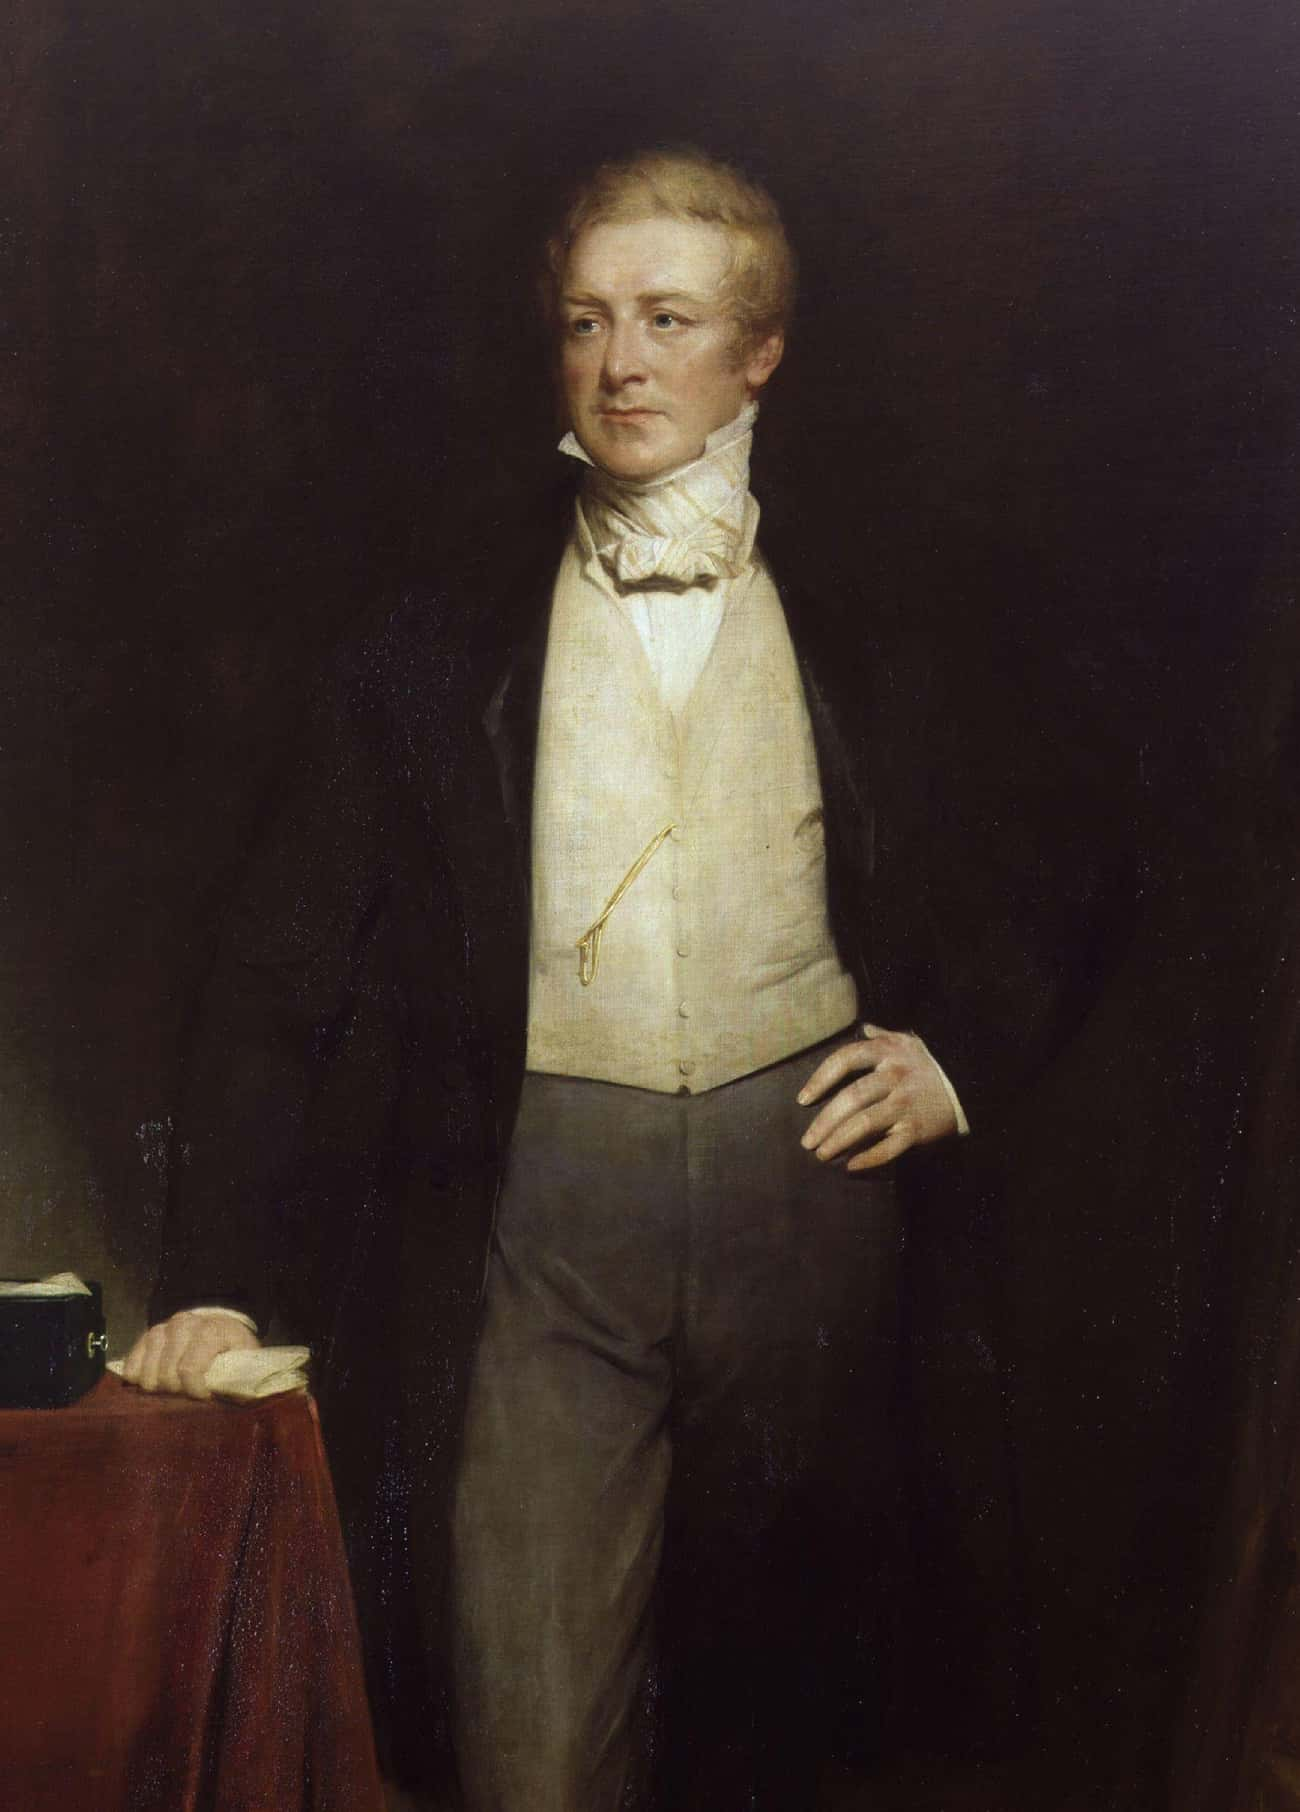 September 1845: The British Ignore The Early Warning Signs